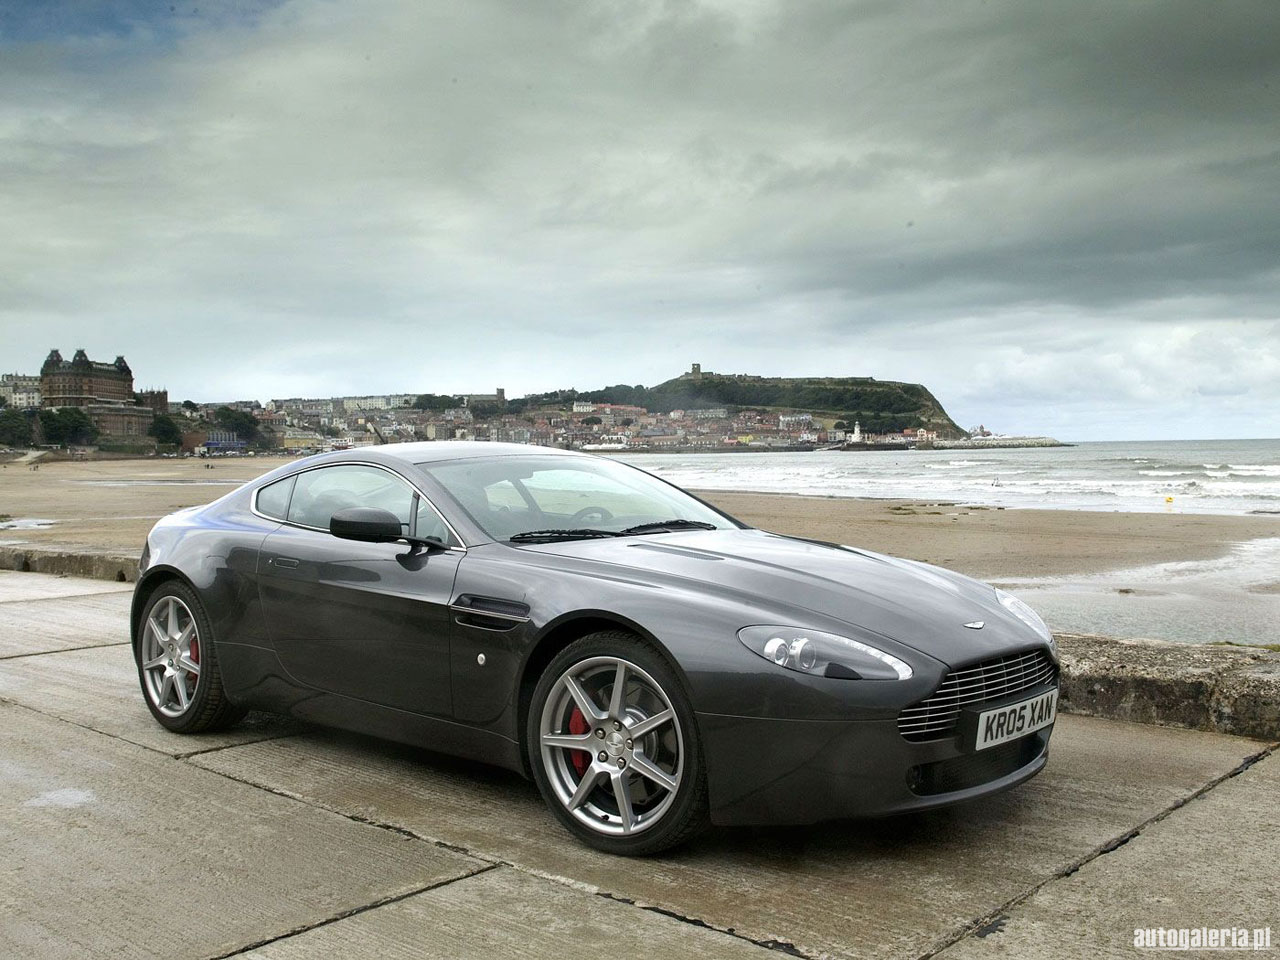 Supercars Wallpapers Aston Martin V8 Vantage Wallpapers 1280x960